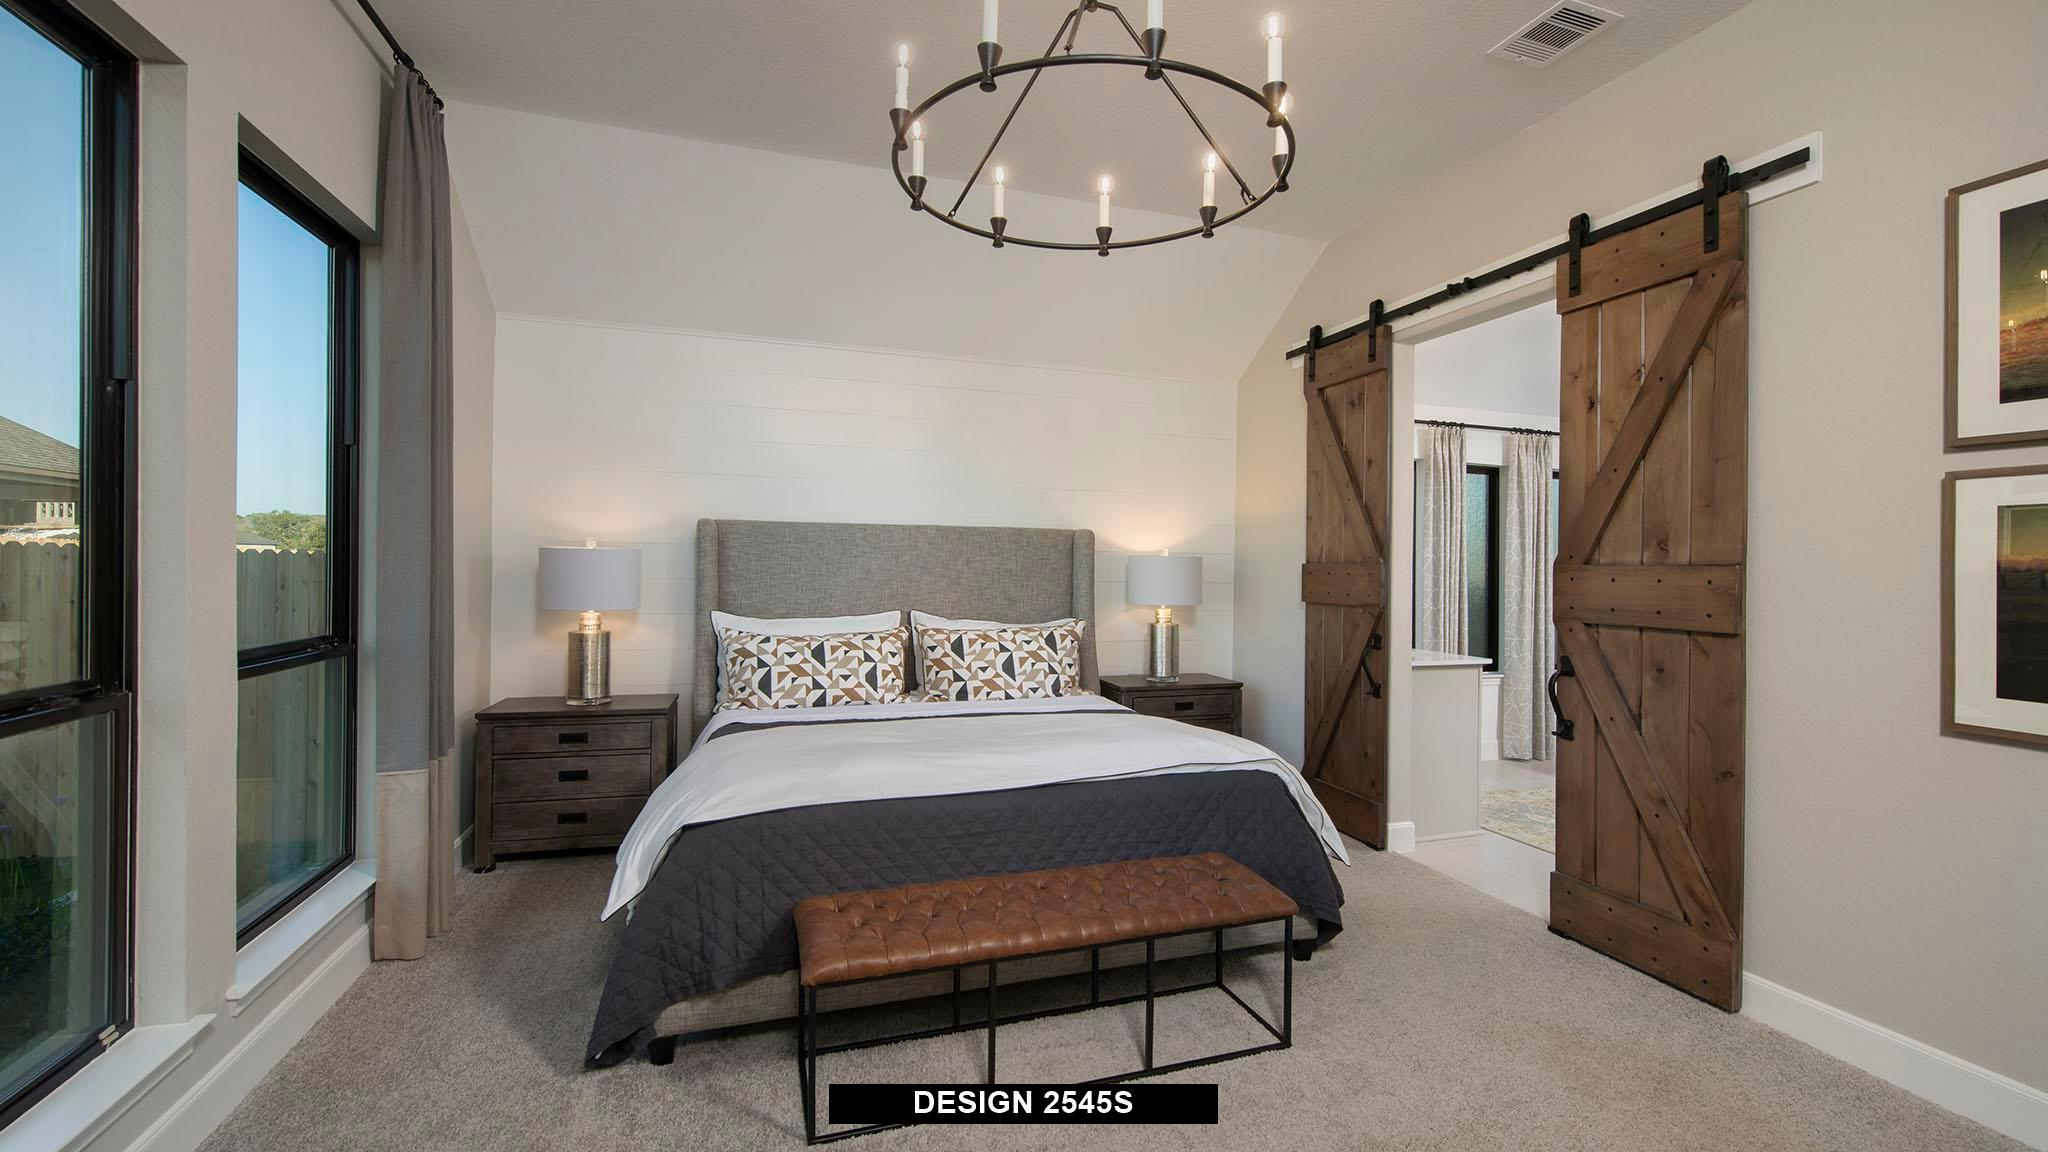 Bedroom featured in the 2545S By Perry Homes in San Antonio, TX